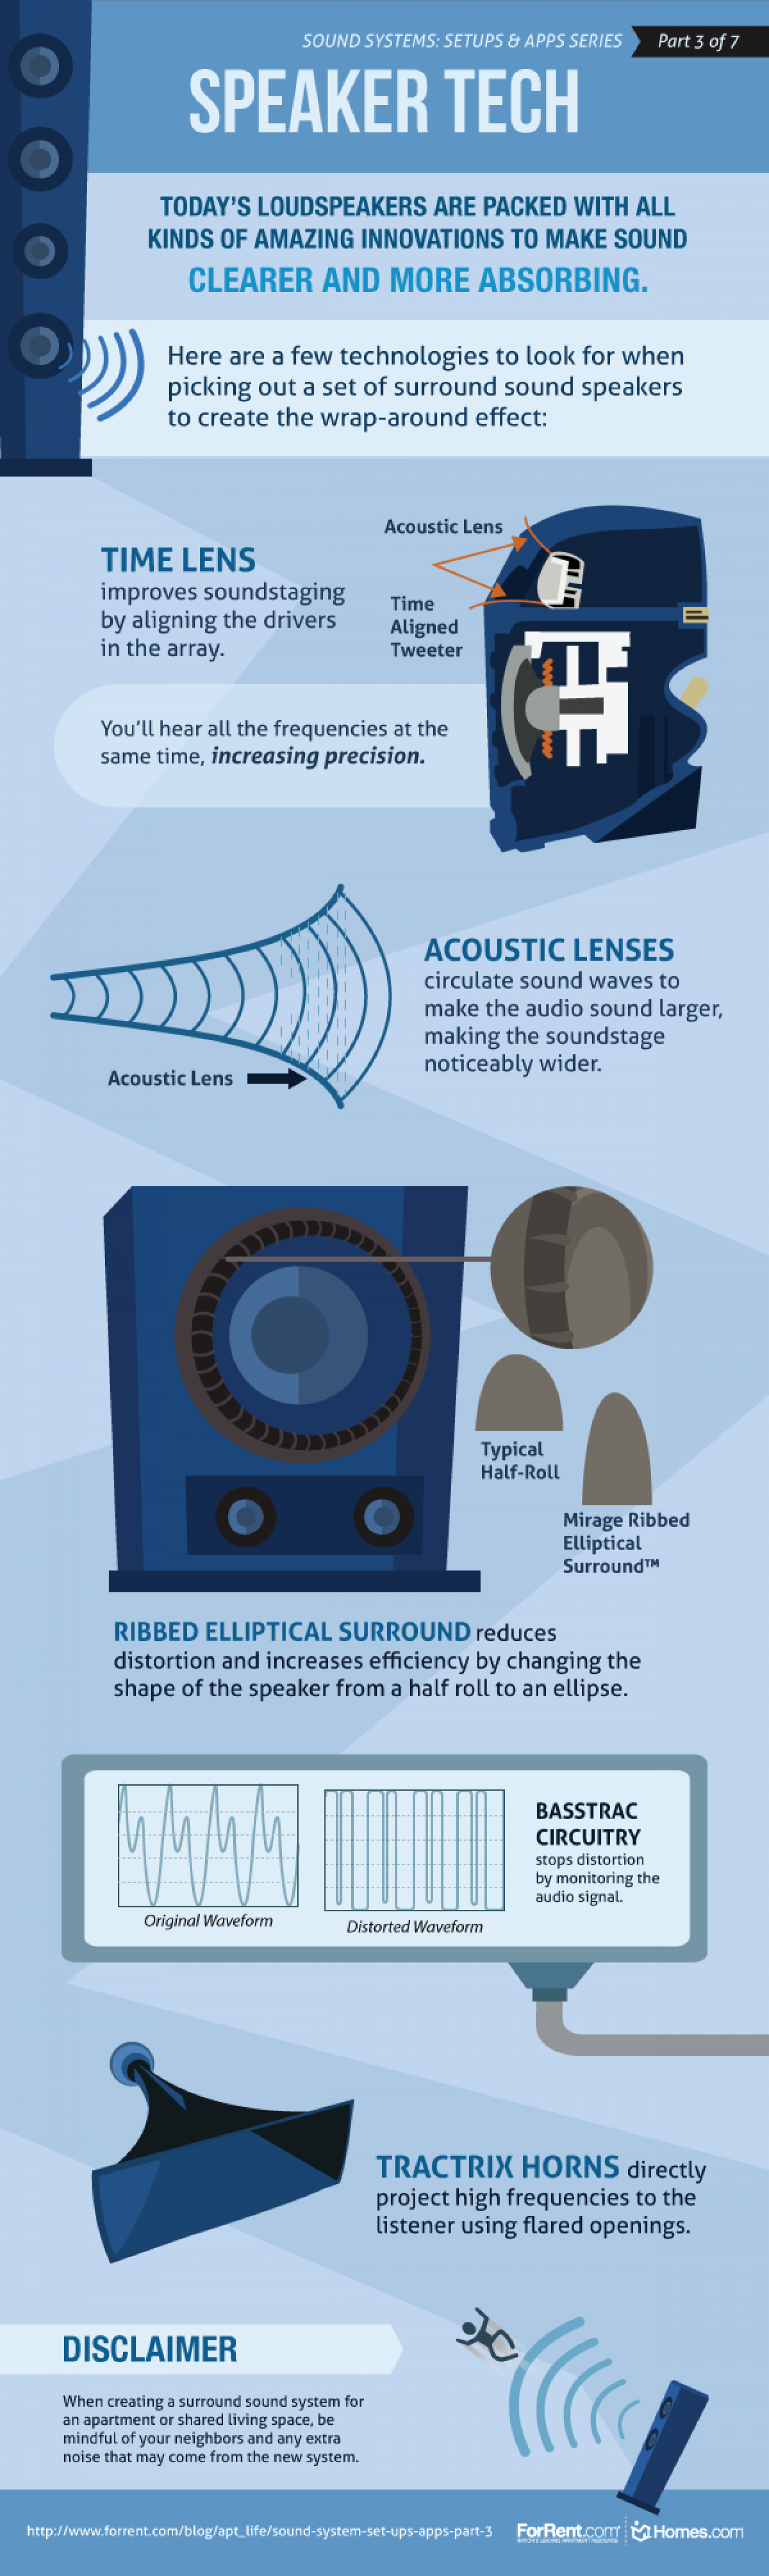 Sound System Set Ups & Apps – Part 3 Infographic